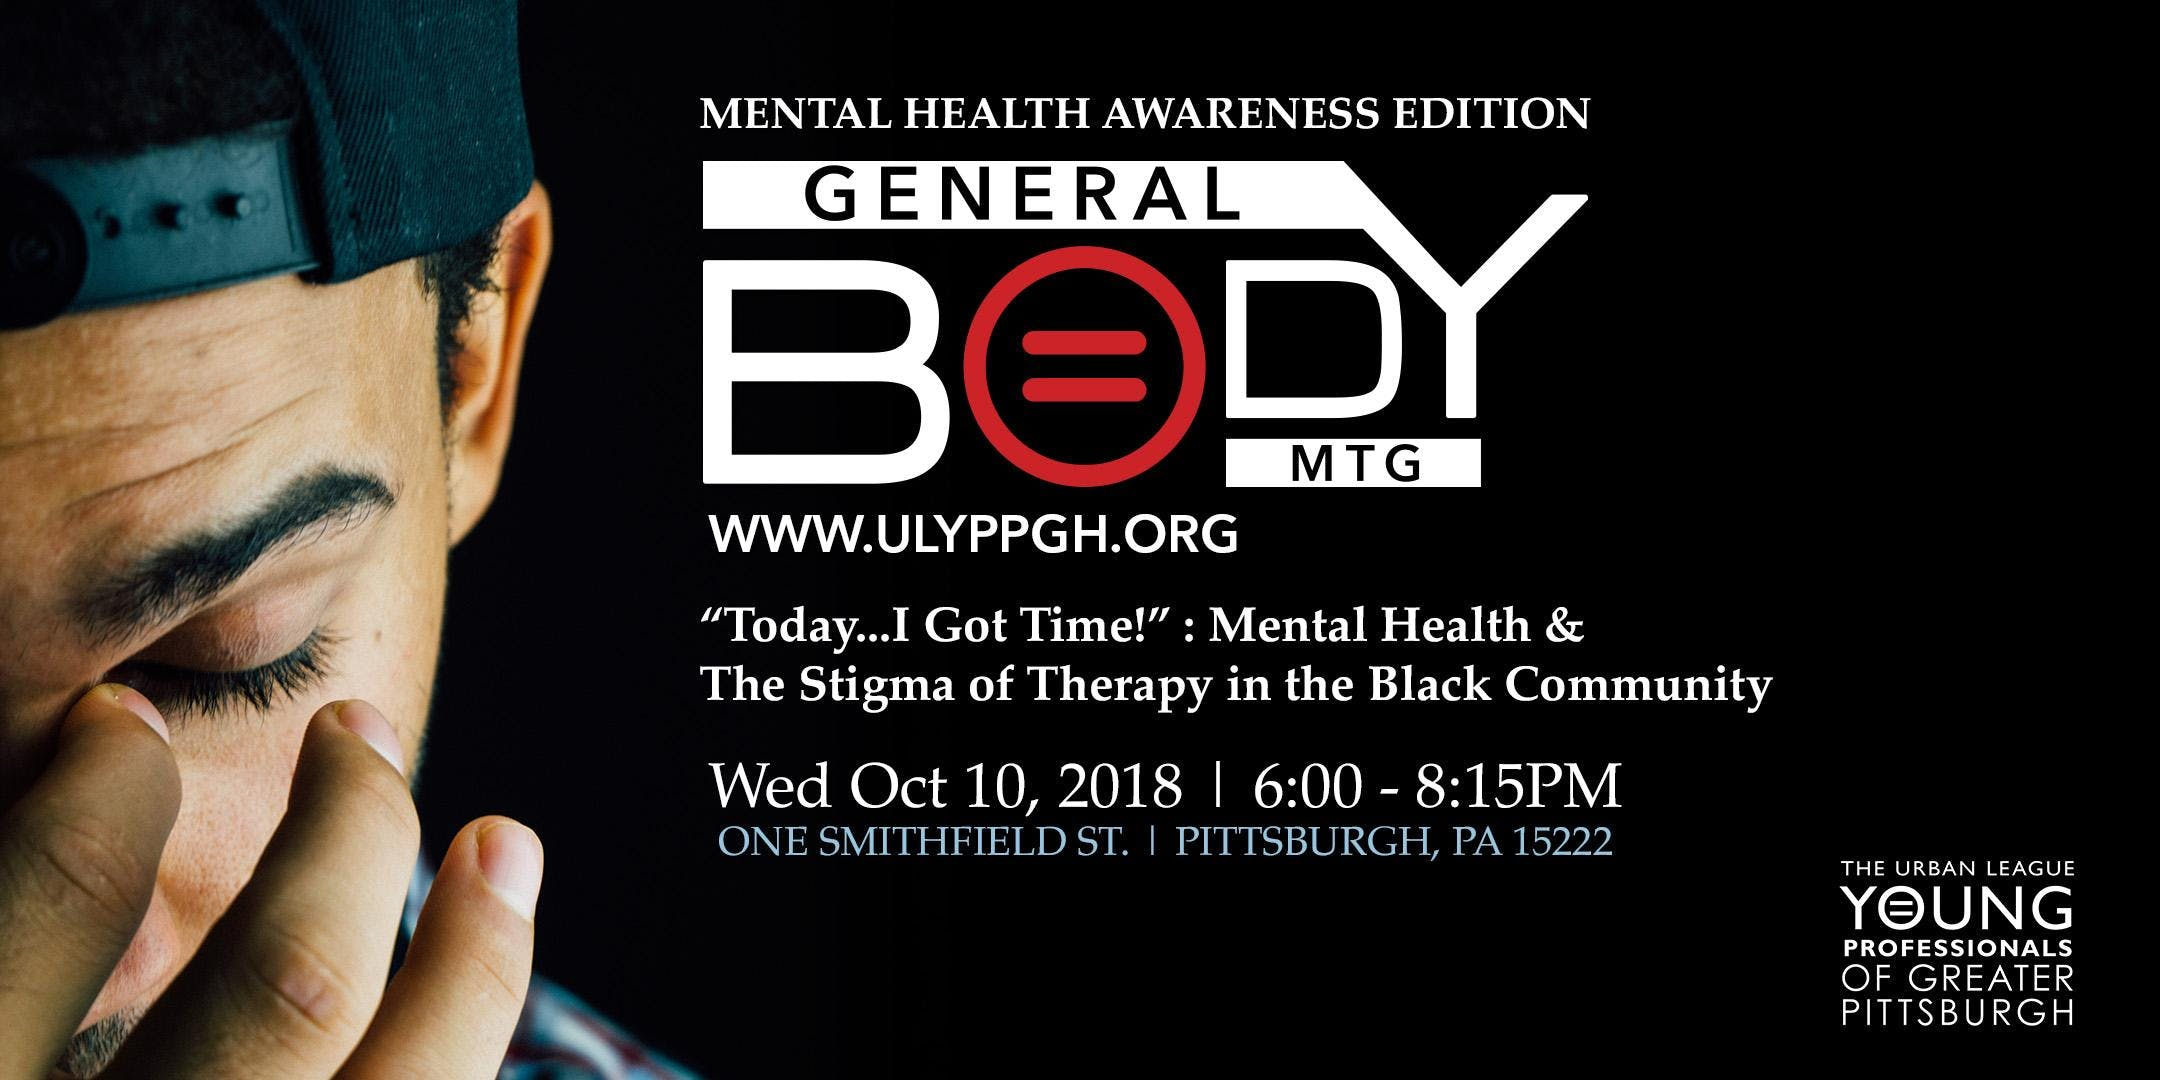 Today I Have Time The Stigma Of Therapy In The African American